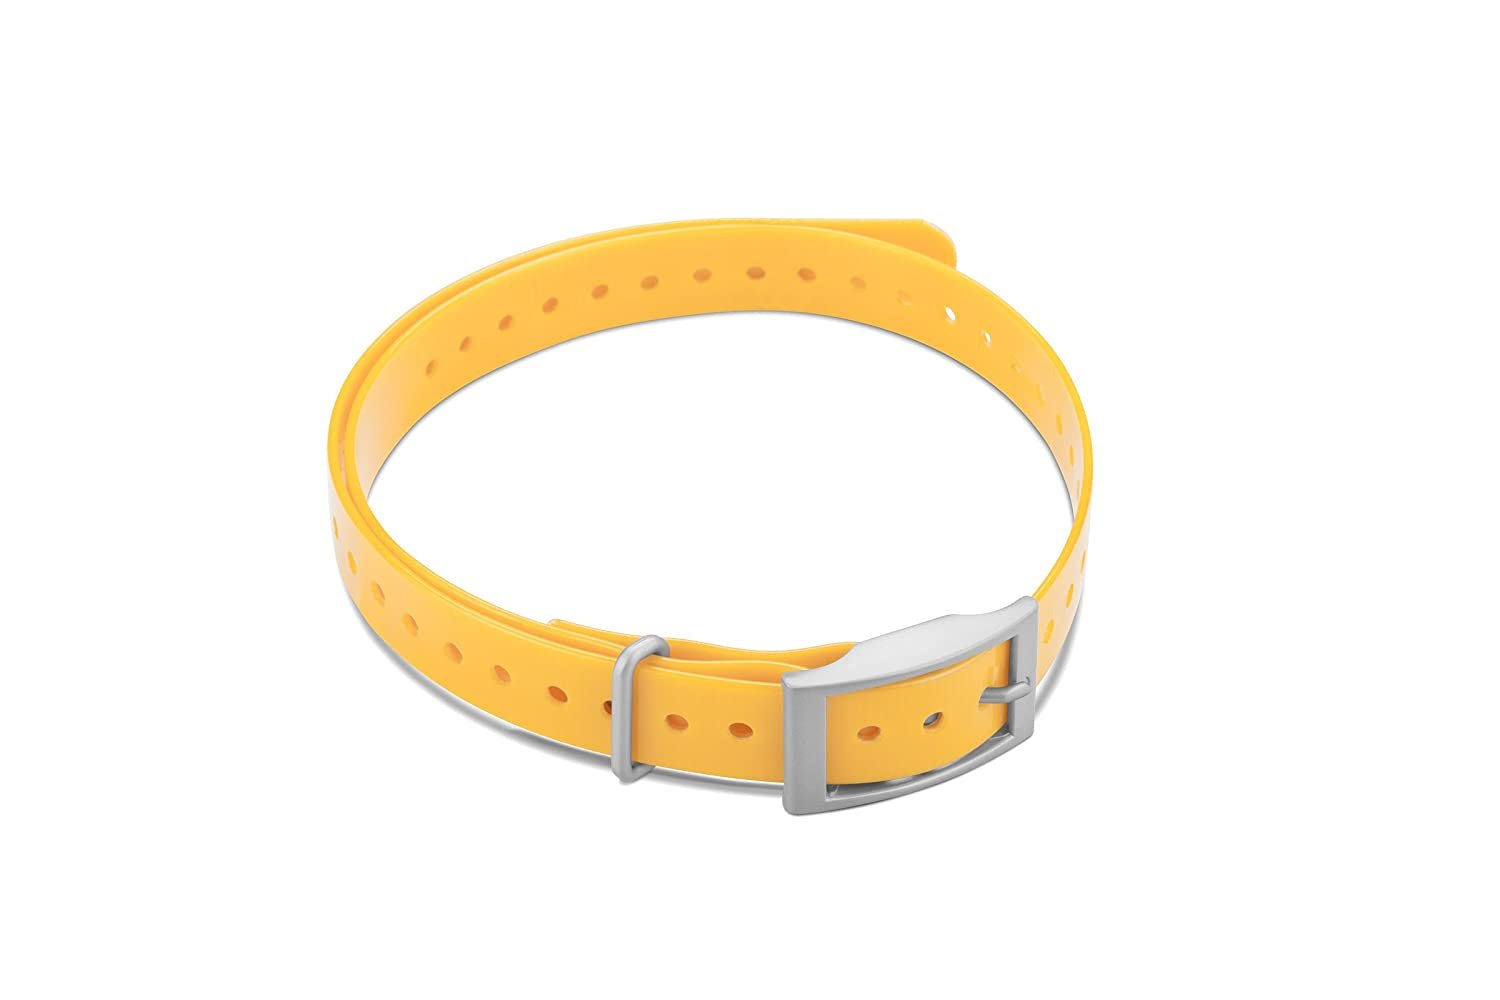 Garmin 010-11870-04 3/4-Inch Collar Strap Square Buckle for Delta Series Dog Device, Yellow Garmin Canada ca mobile electronics GARA2